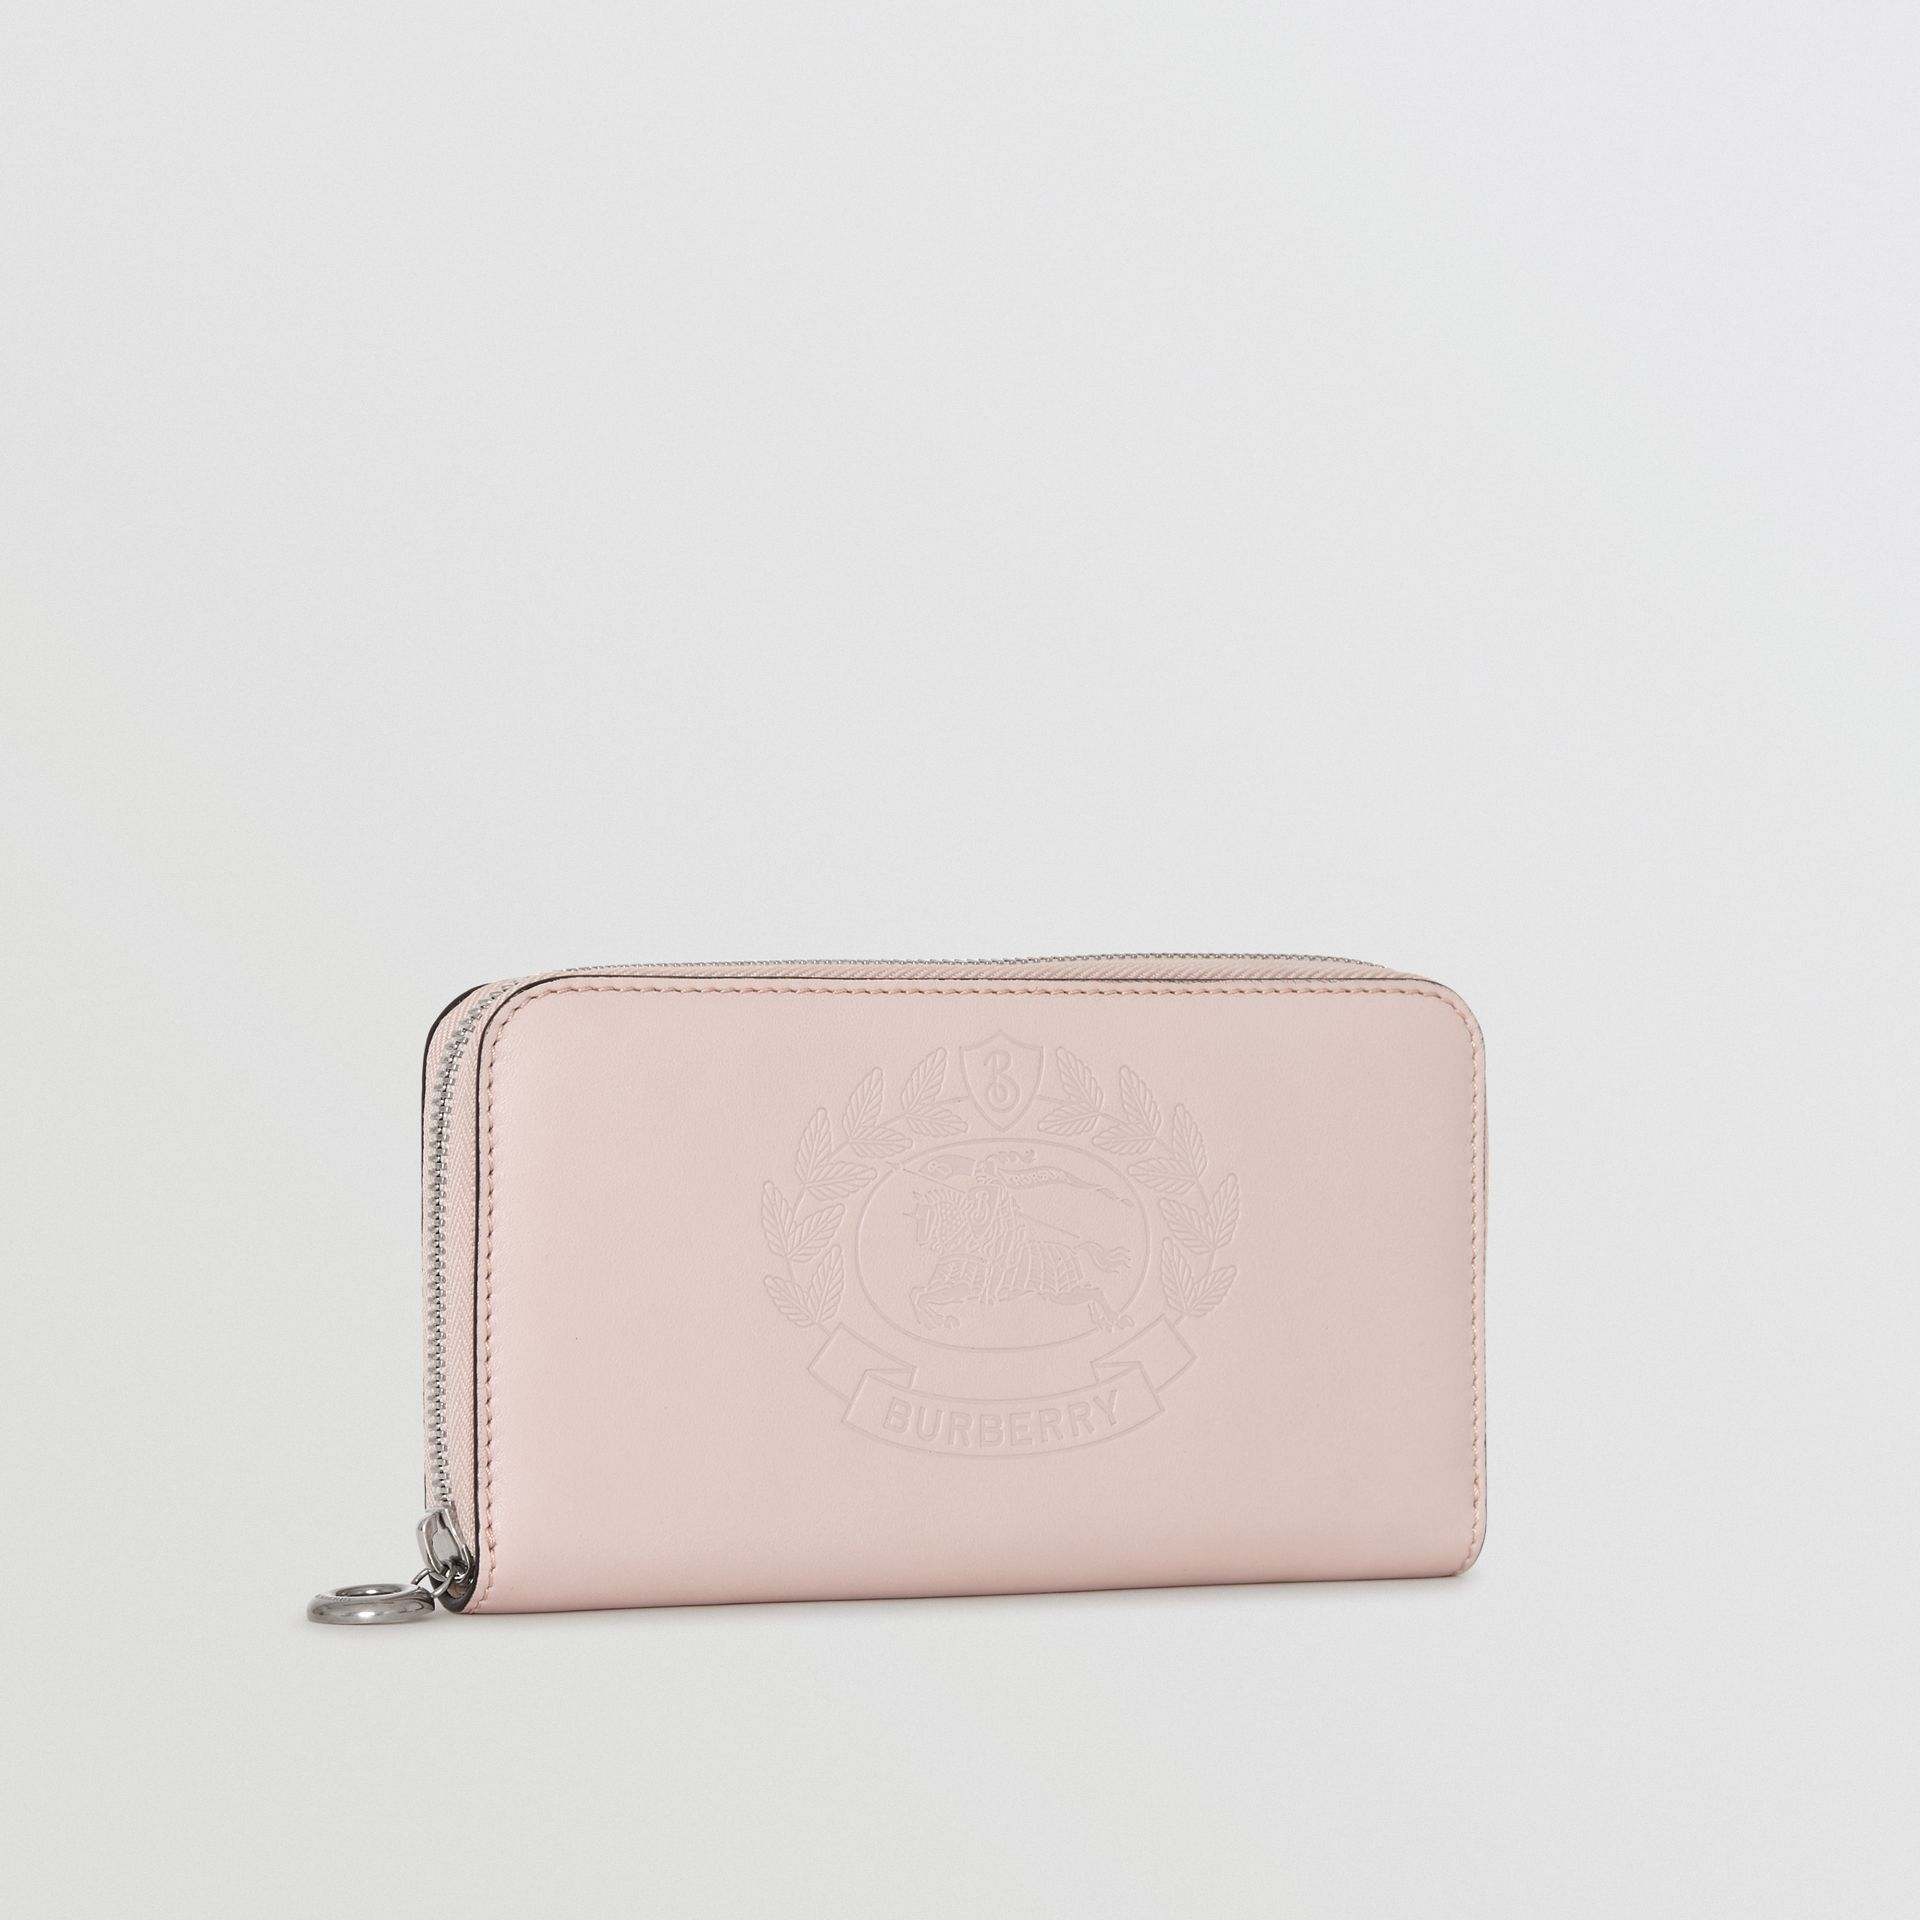 Embossed Crest Two-tone Leather Ziparound Wallet in Chalk Pink - Women | Burberry - gallery image 3